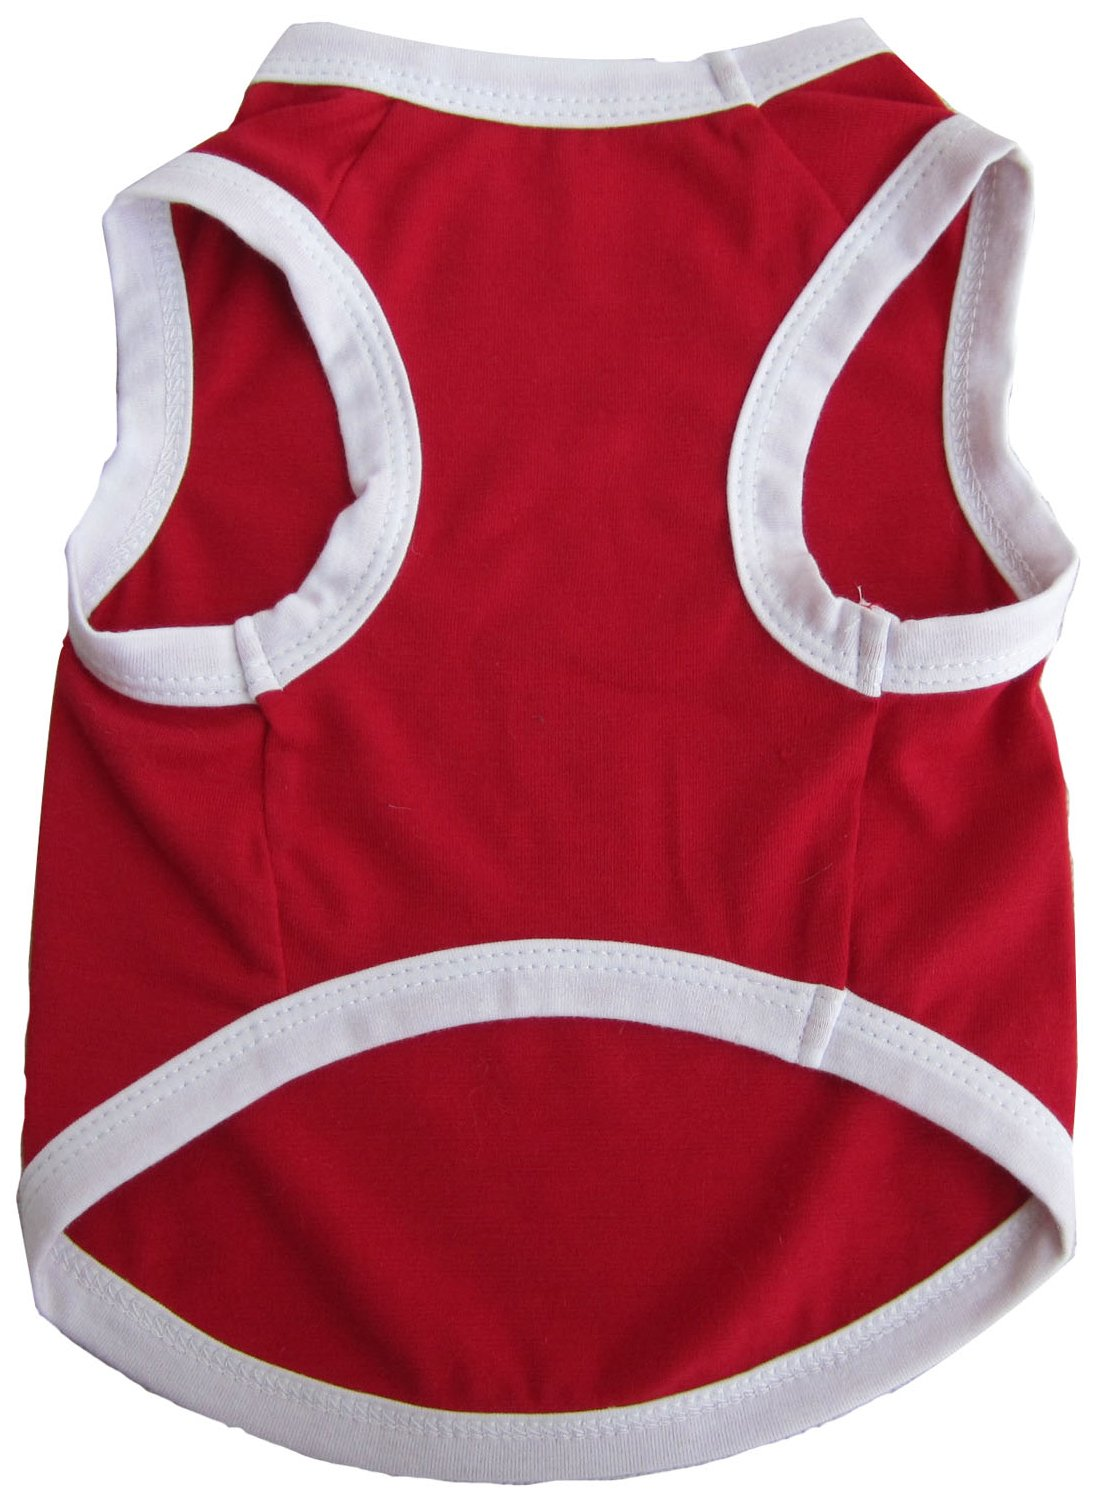 Iconic Pet Pretty Pet Tank Top, Small, Red